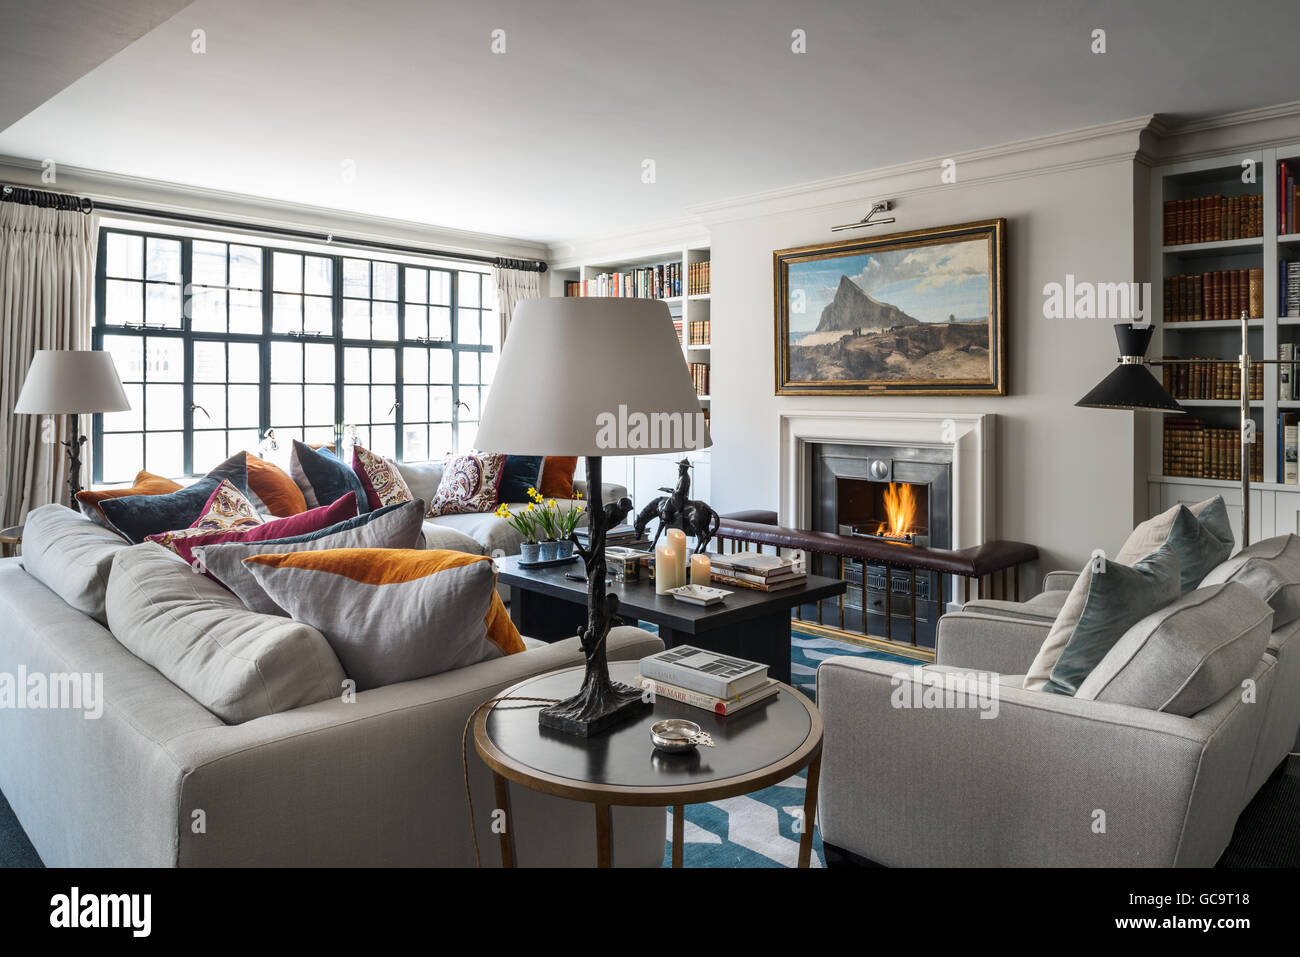 Pair of linen upholstered sofas and armchairs designed by Stephanie Everard in living room with windows - Stock Image